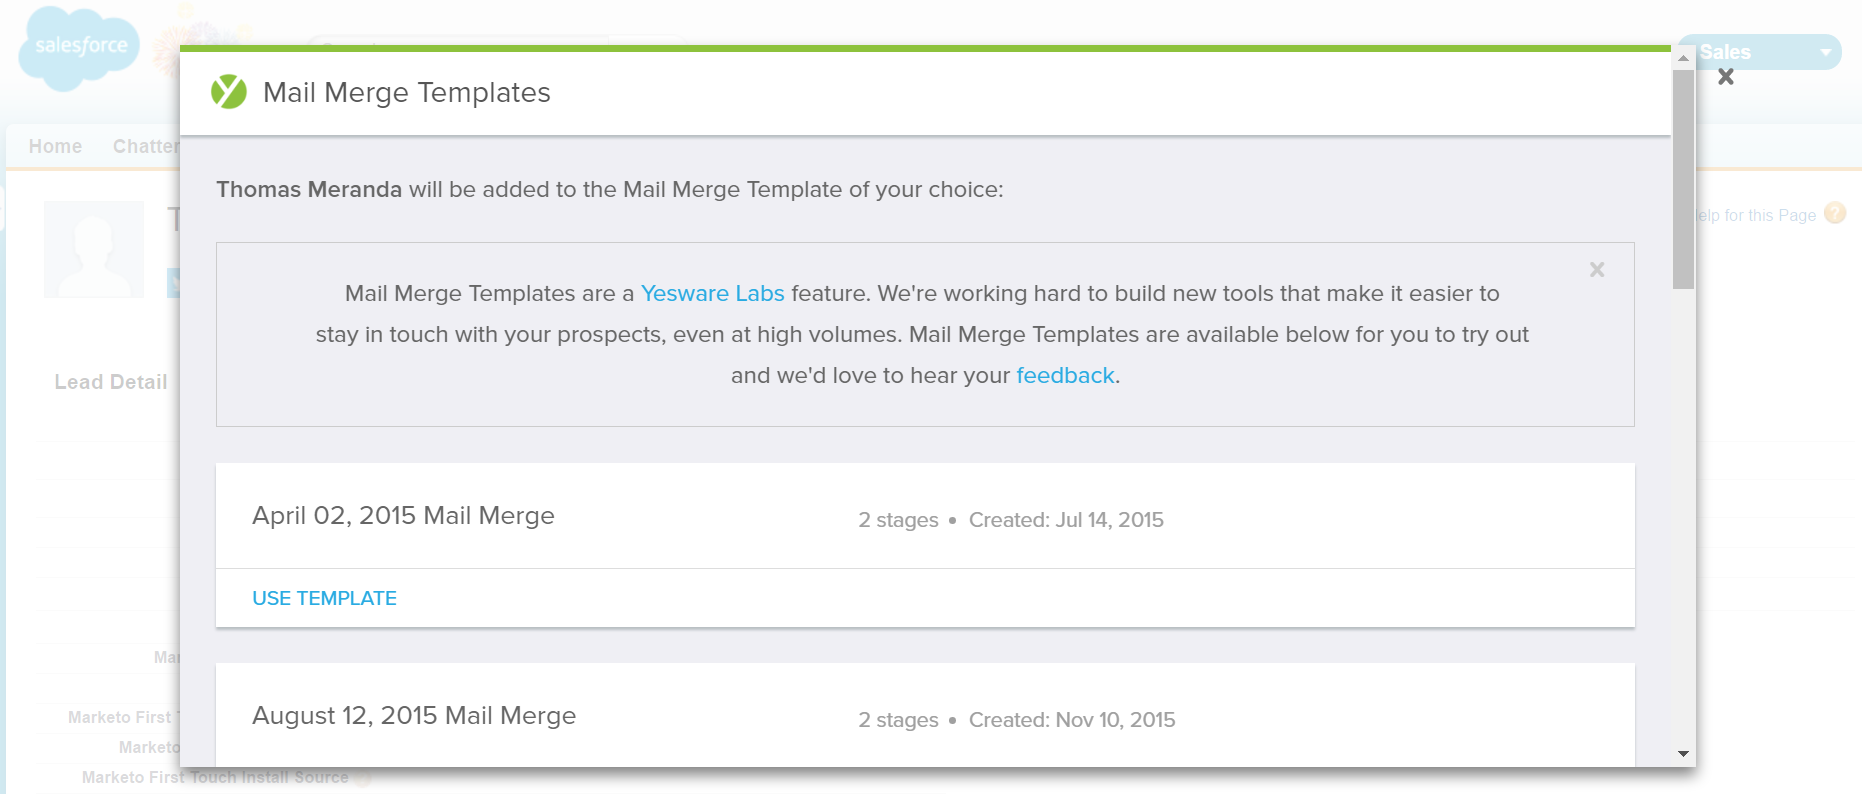 salesforce_select-new-mail-merge-template